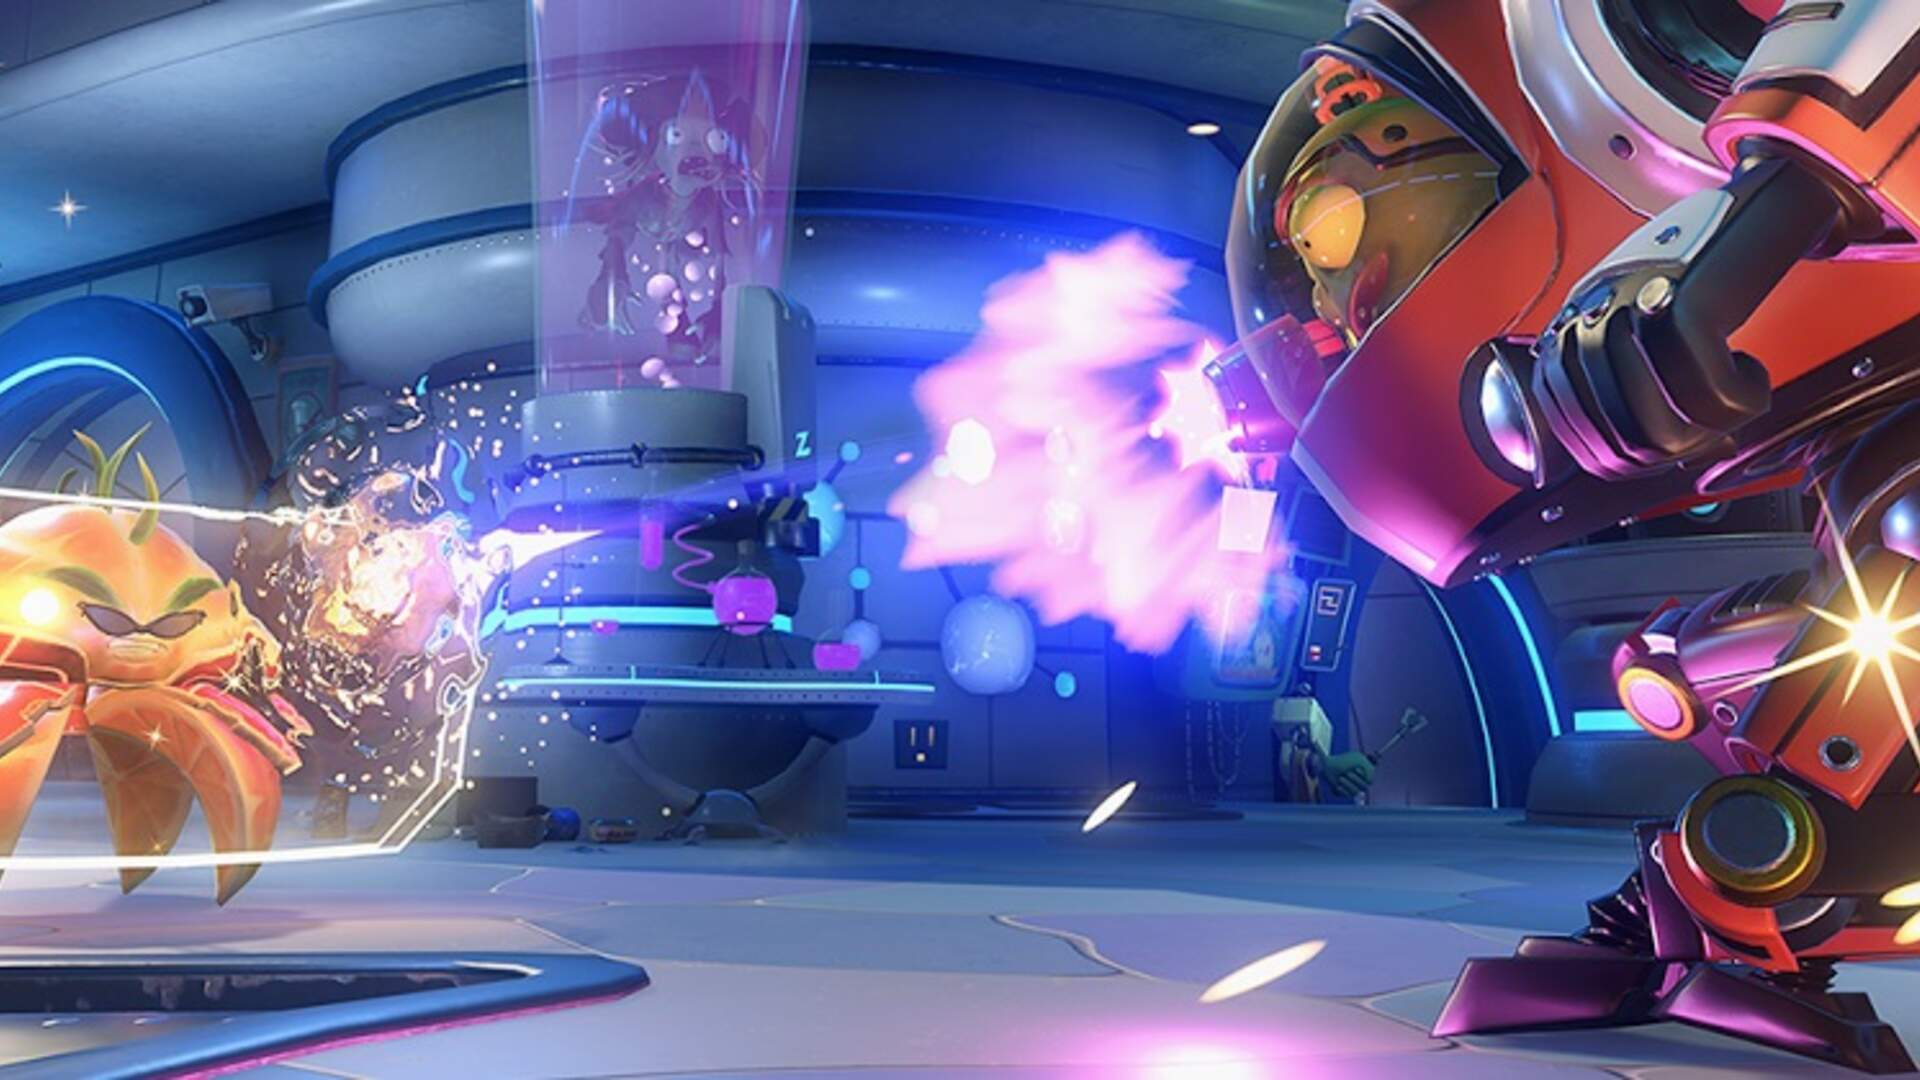 Plants Vs Zombies Garden Warfare 2 Earn Coins And Level Up Fast